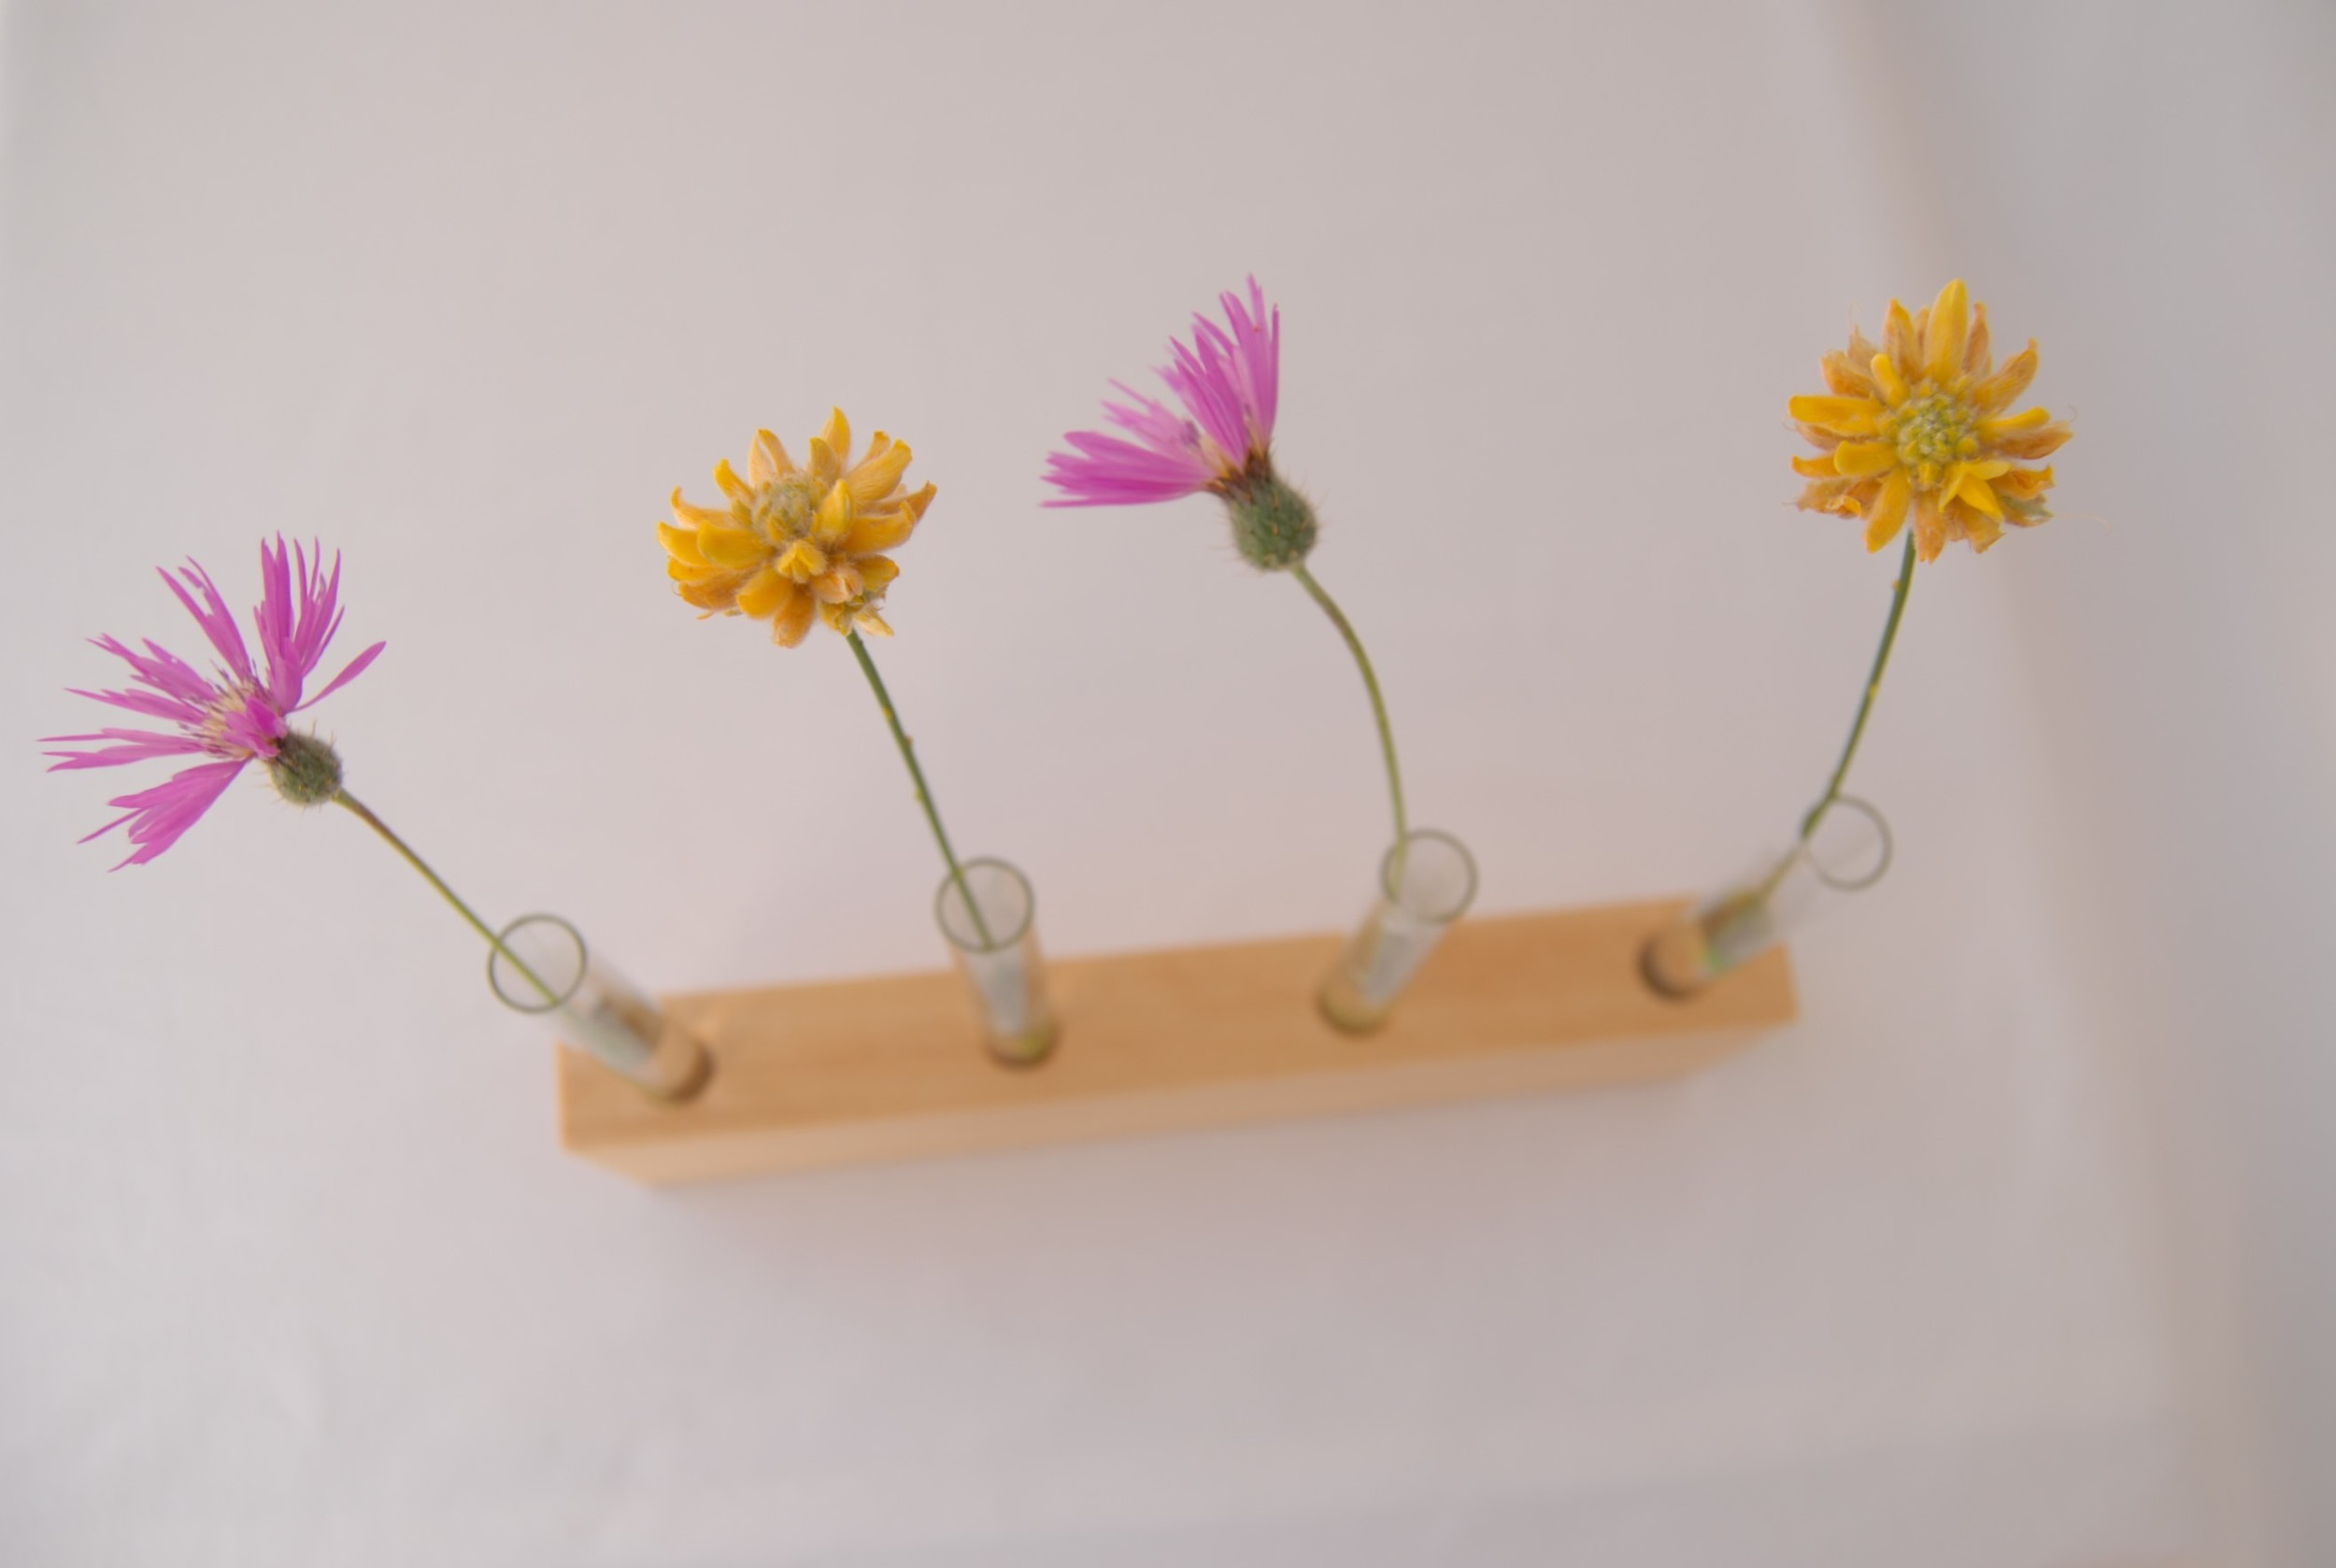 Flower display vase with test tubes and wild flowers /  Expositor de flores en madera de samba con tubos de ensayo.